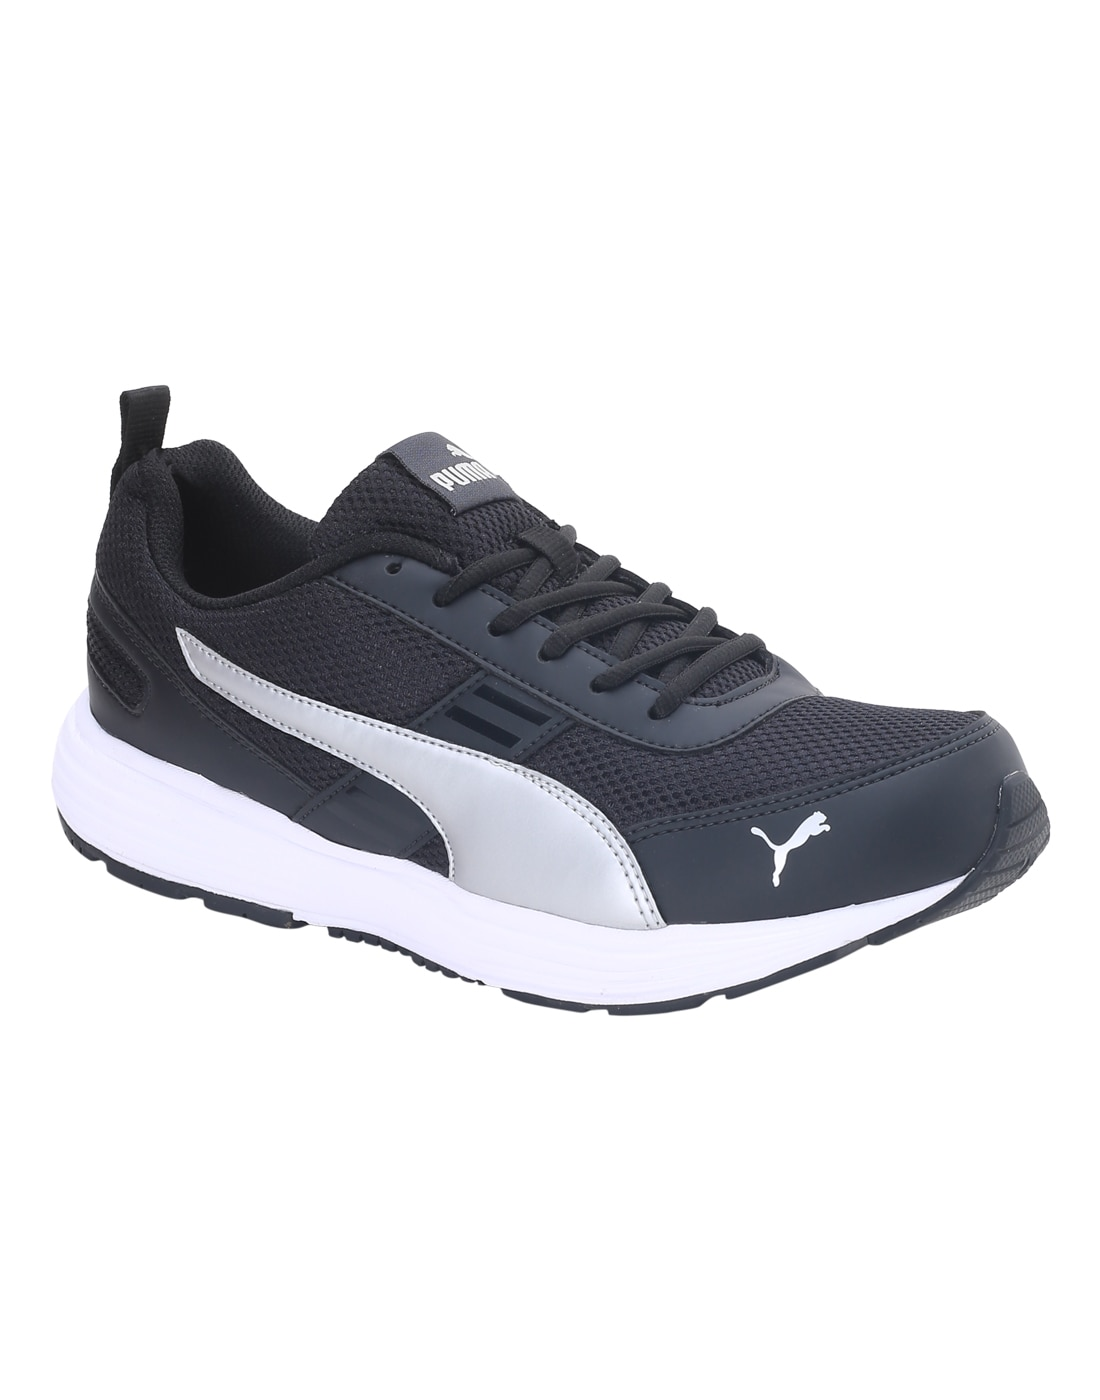 8814974bf3c Puma Black Running Shoes for Men online in India at Best price on ...